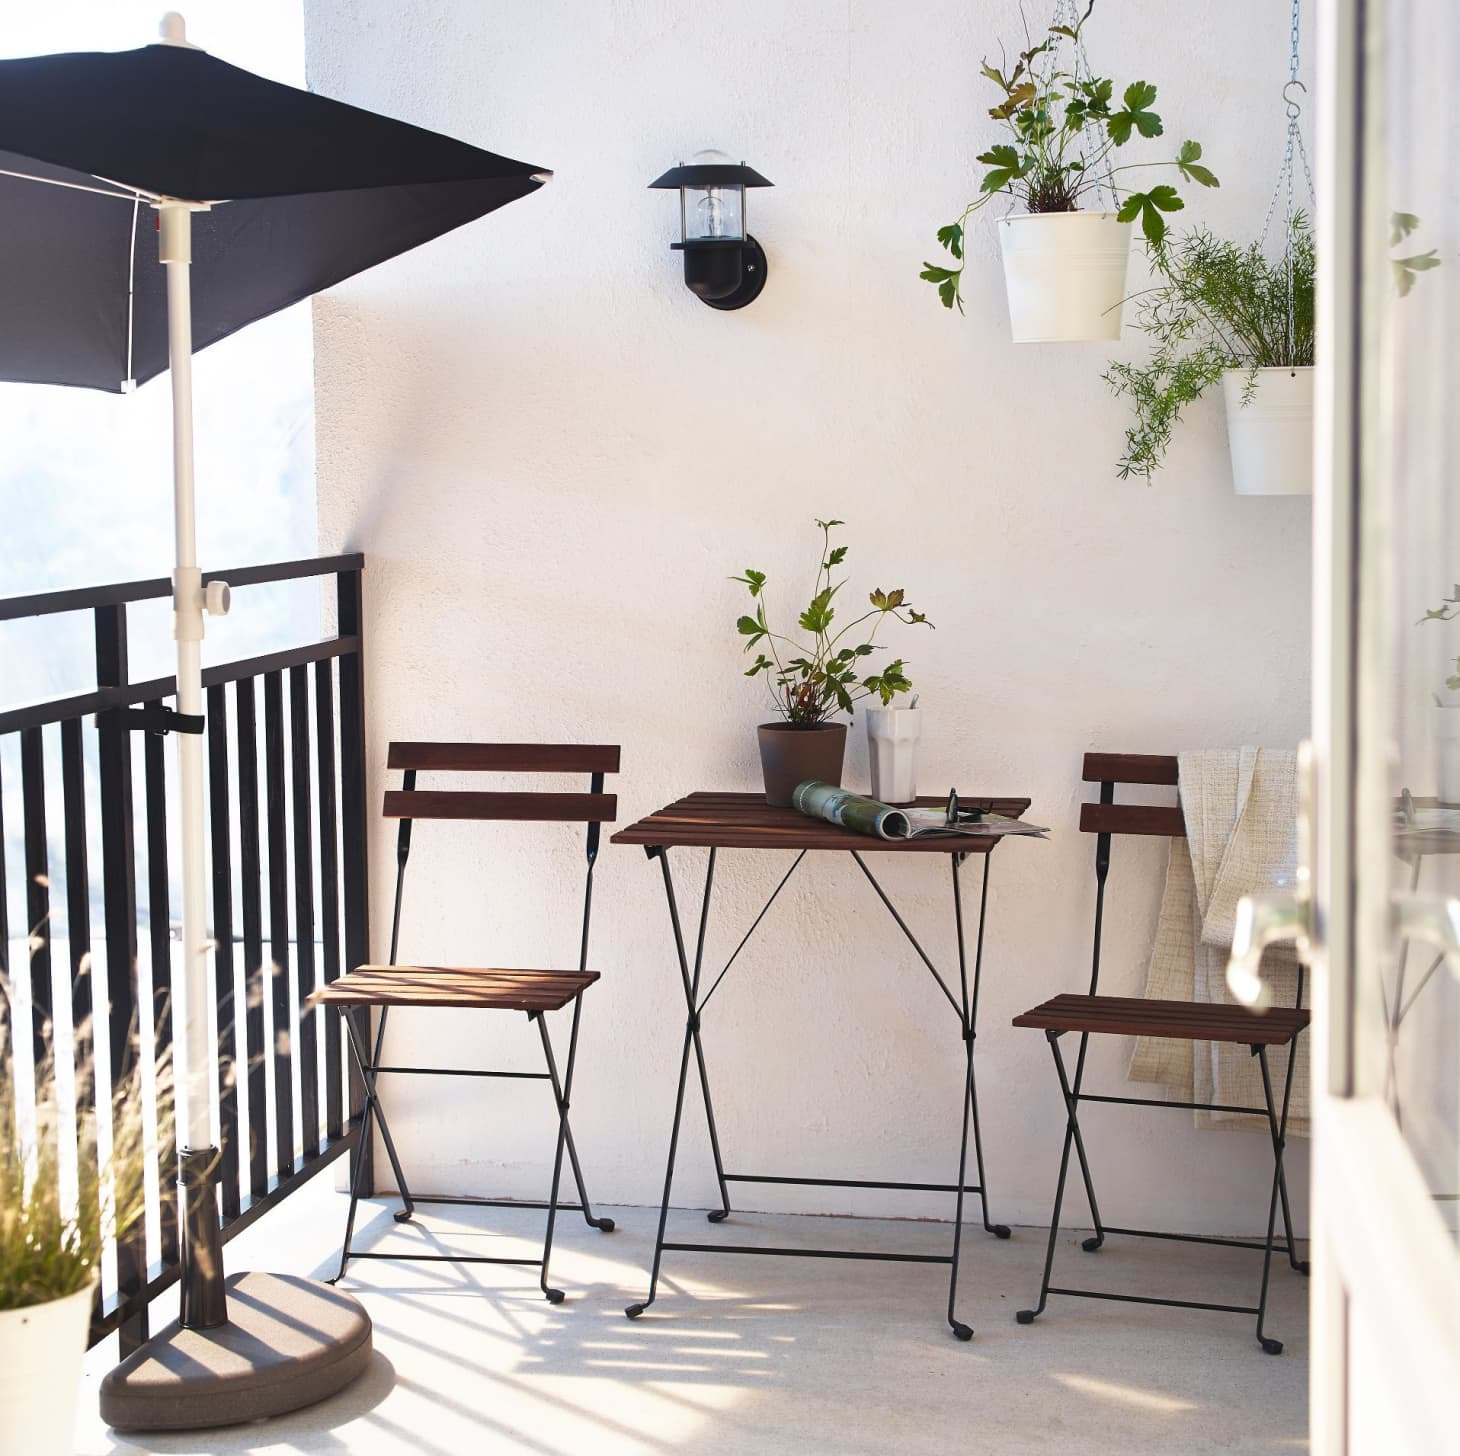 8 Itty Bitty Outdoor Dining Sets Big On Style Not Space